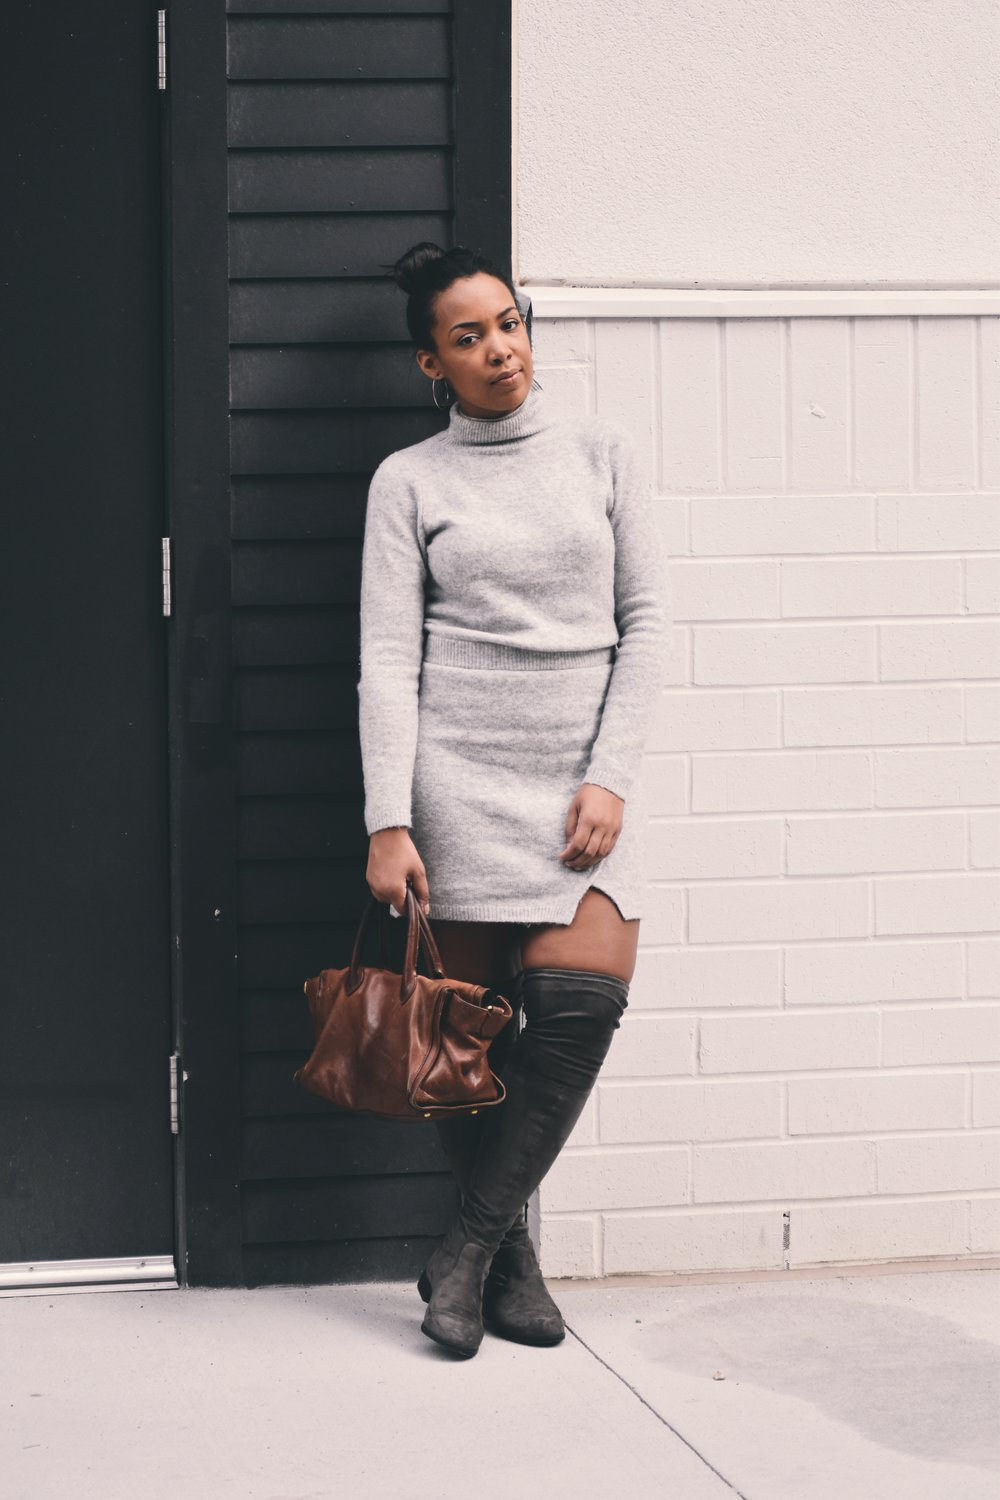 5-asos-sweater-dress-guess-factory-simplee-over-the-knee-boots-stuart-weitzman-lowland-boot-dupe-gray-fall-womens-fashion.JPG